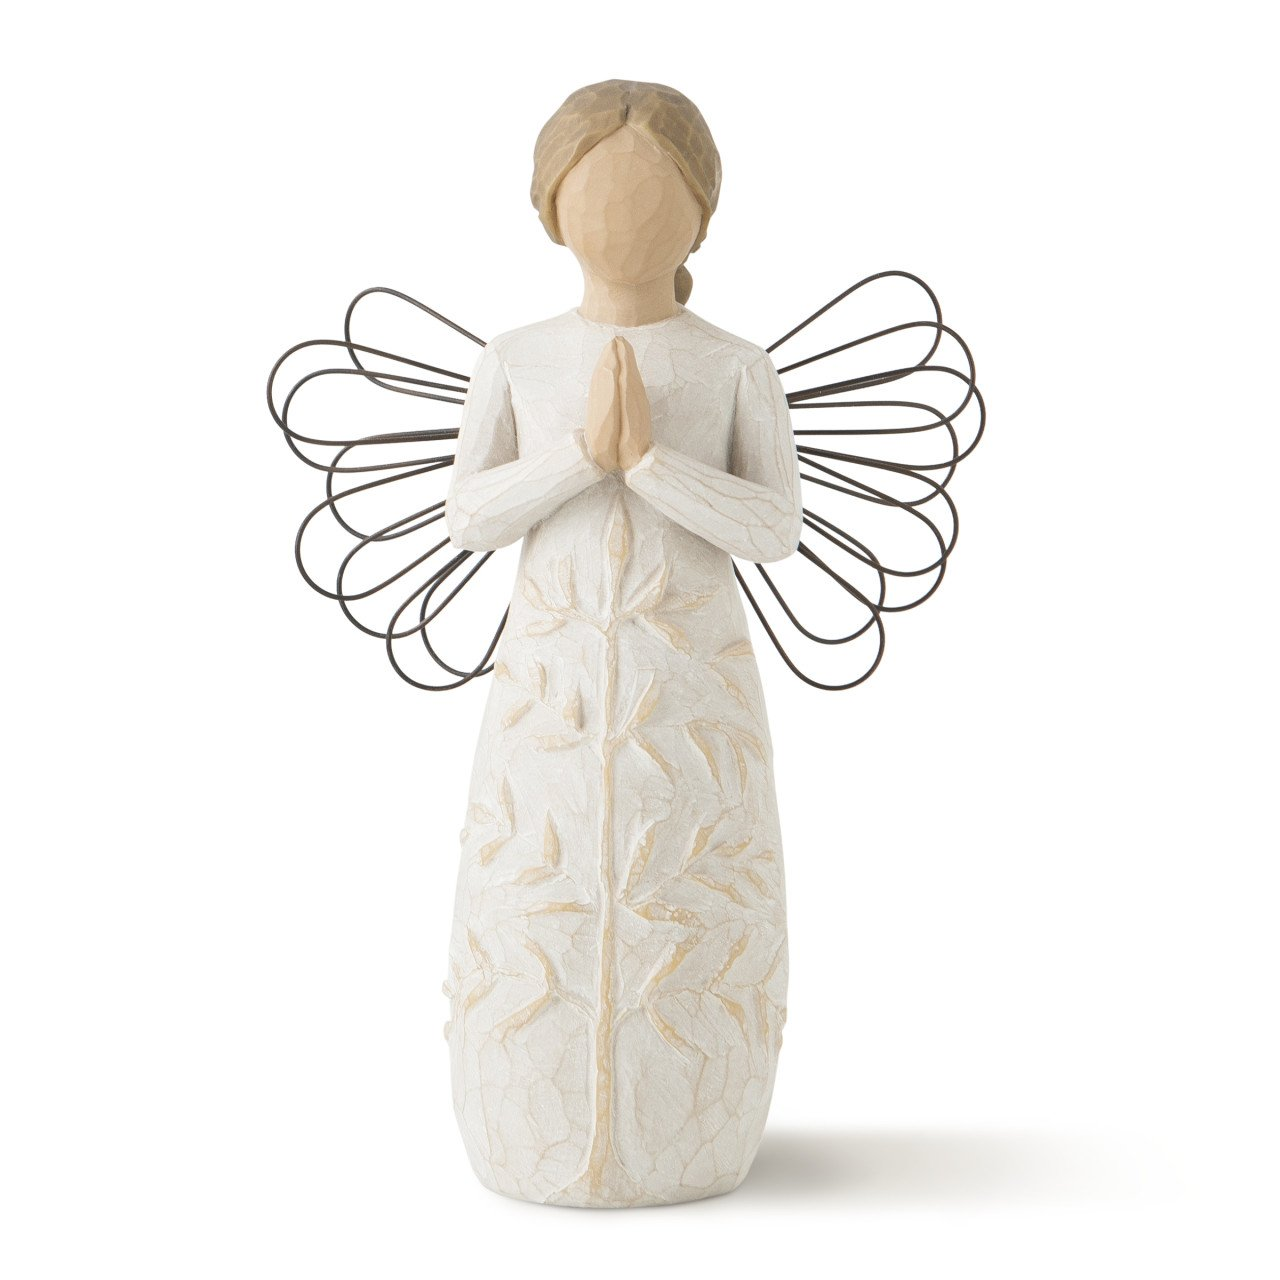 Willow Tree a tree, a prayer Angel, sculpted hand-painted figure by Willow Tree